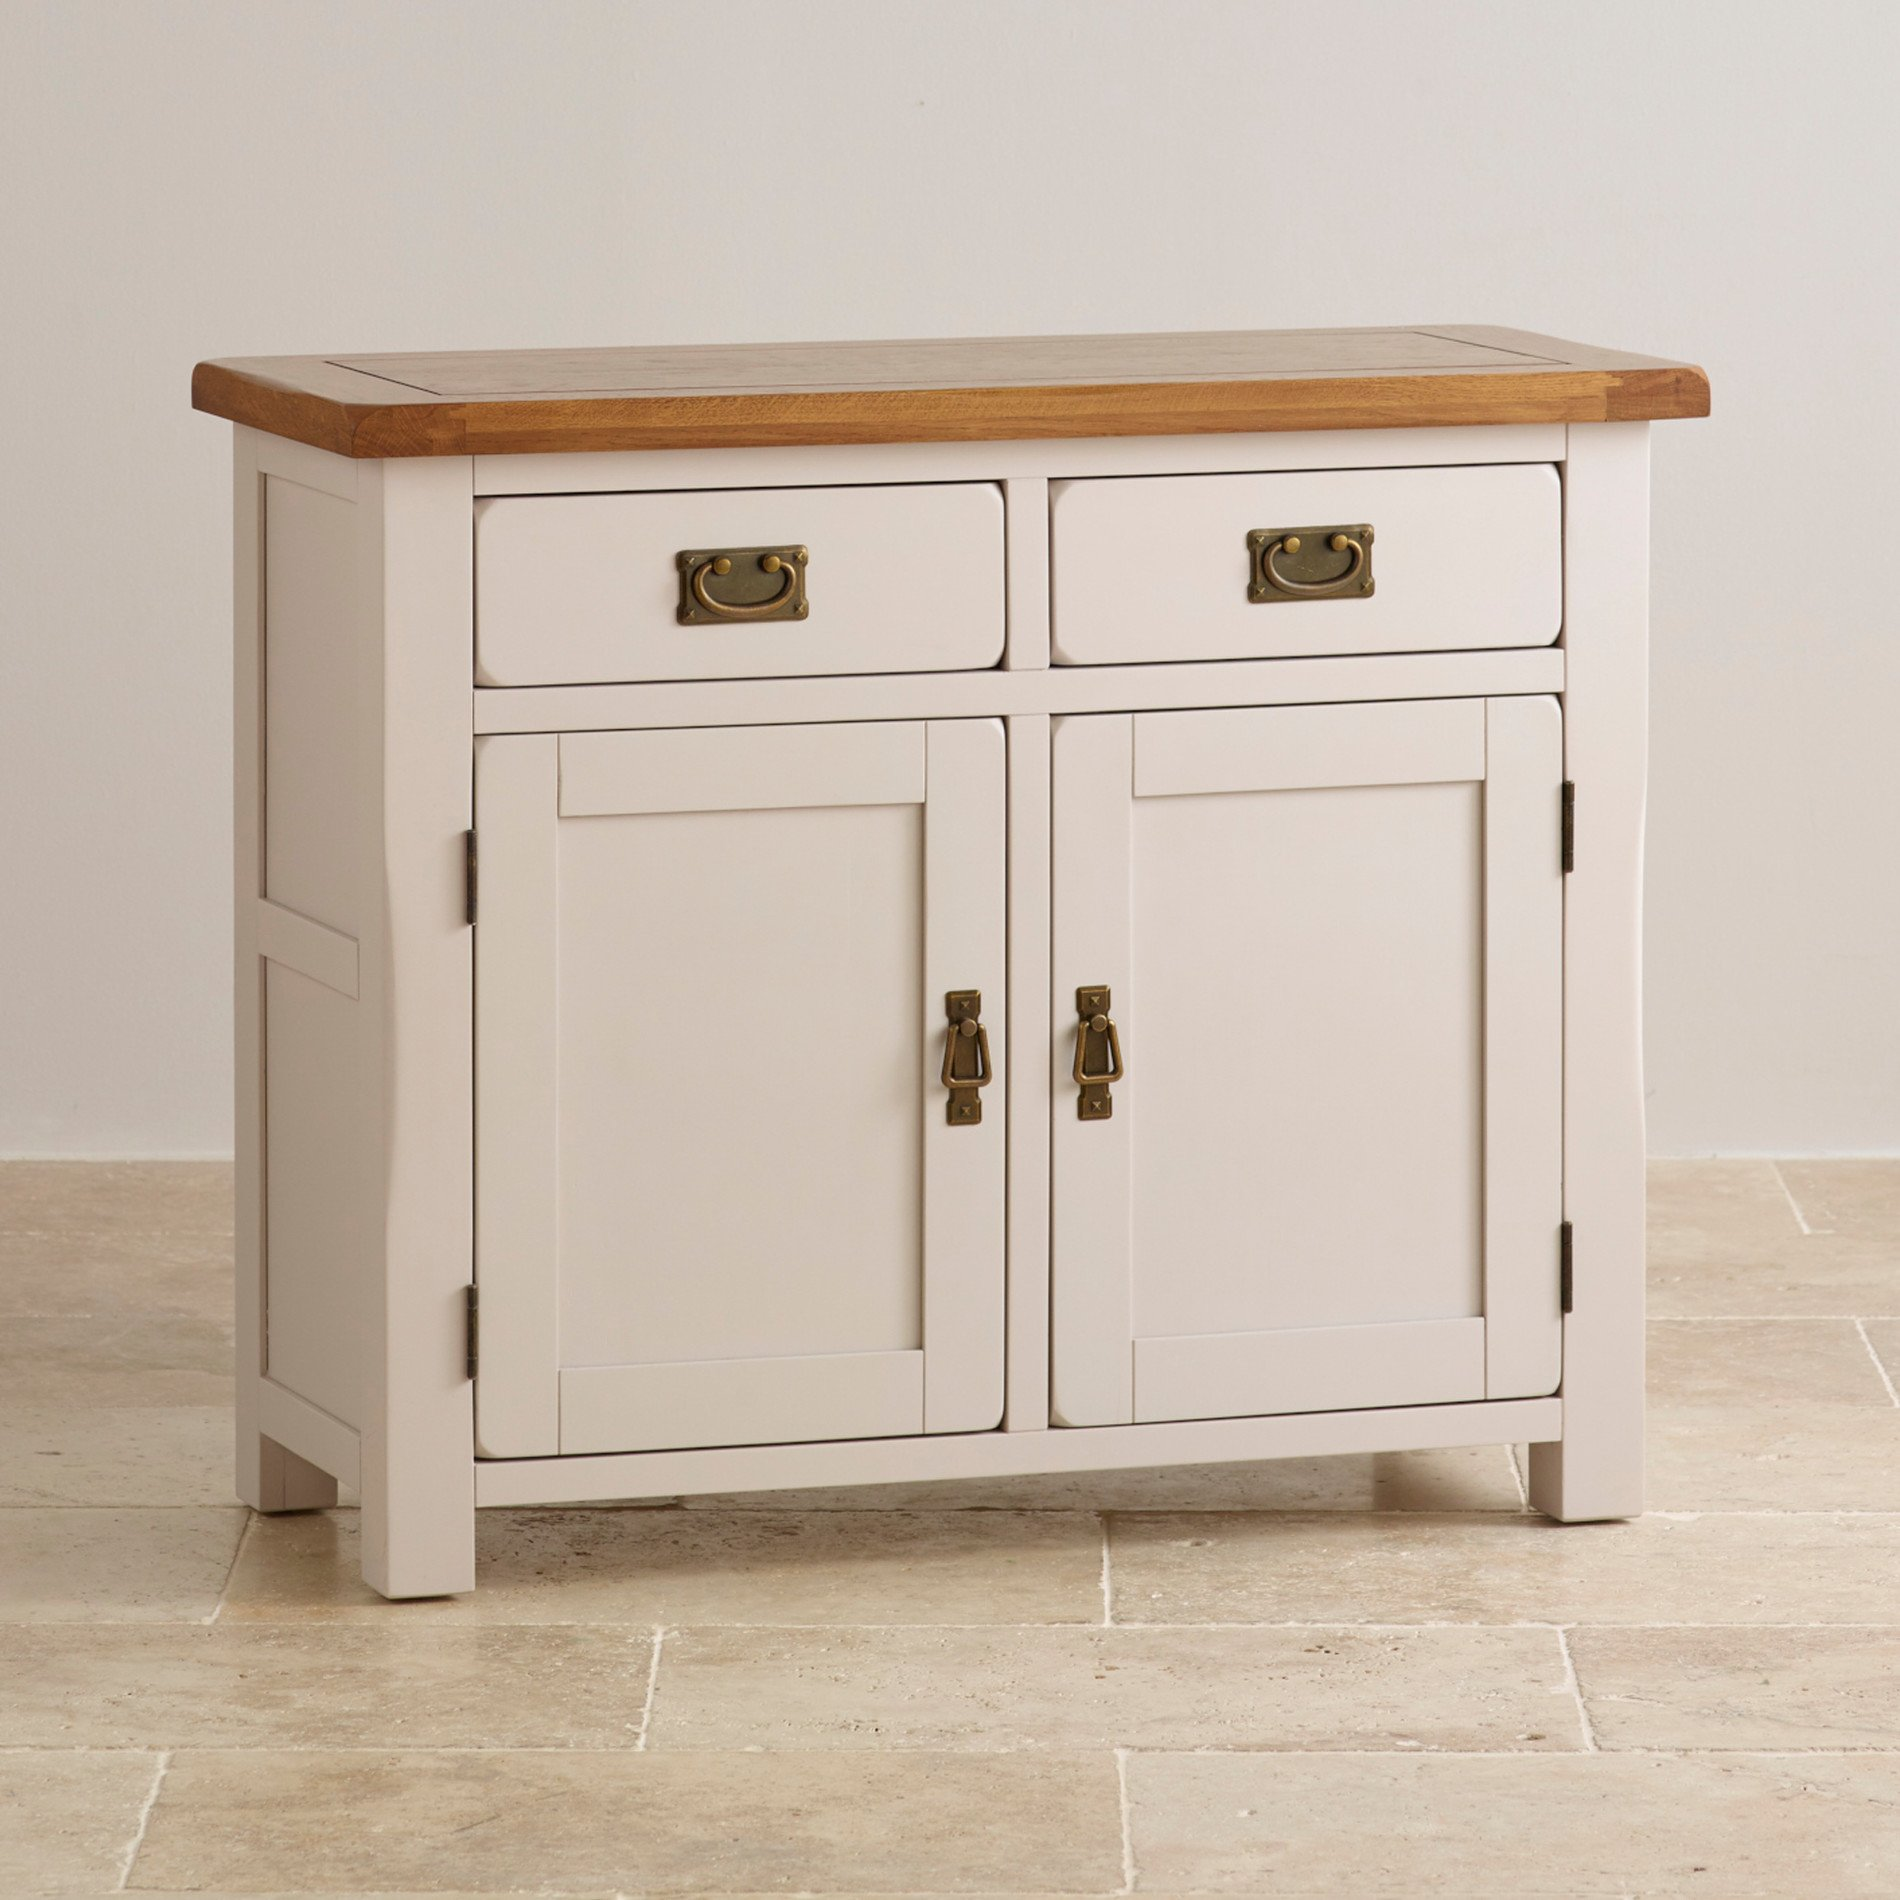 Side Board Kemble Small Painted Sideboard In Rustic Solid Oak